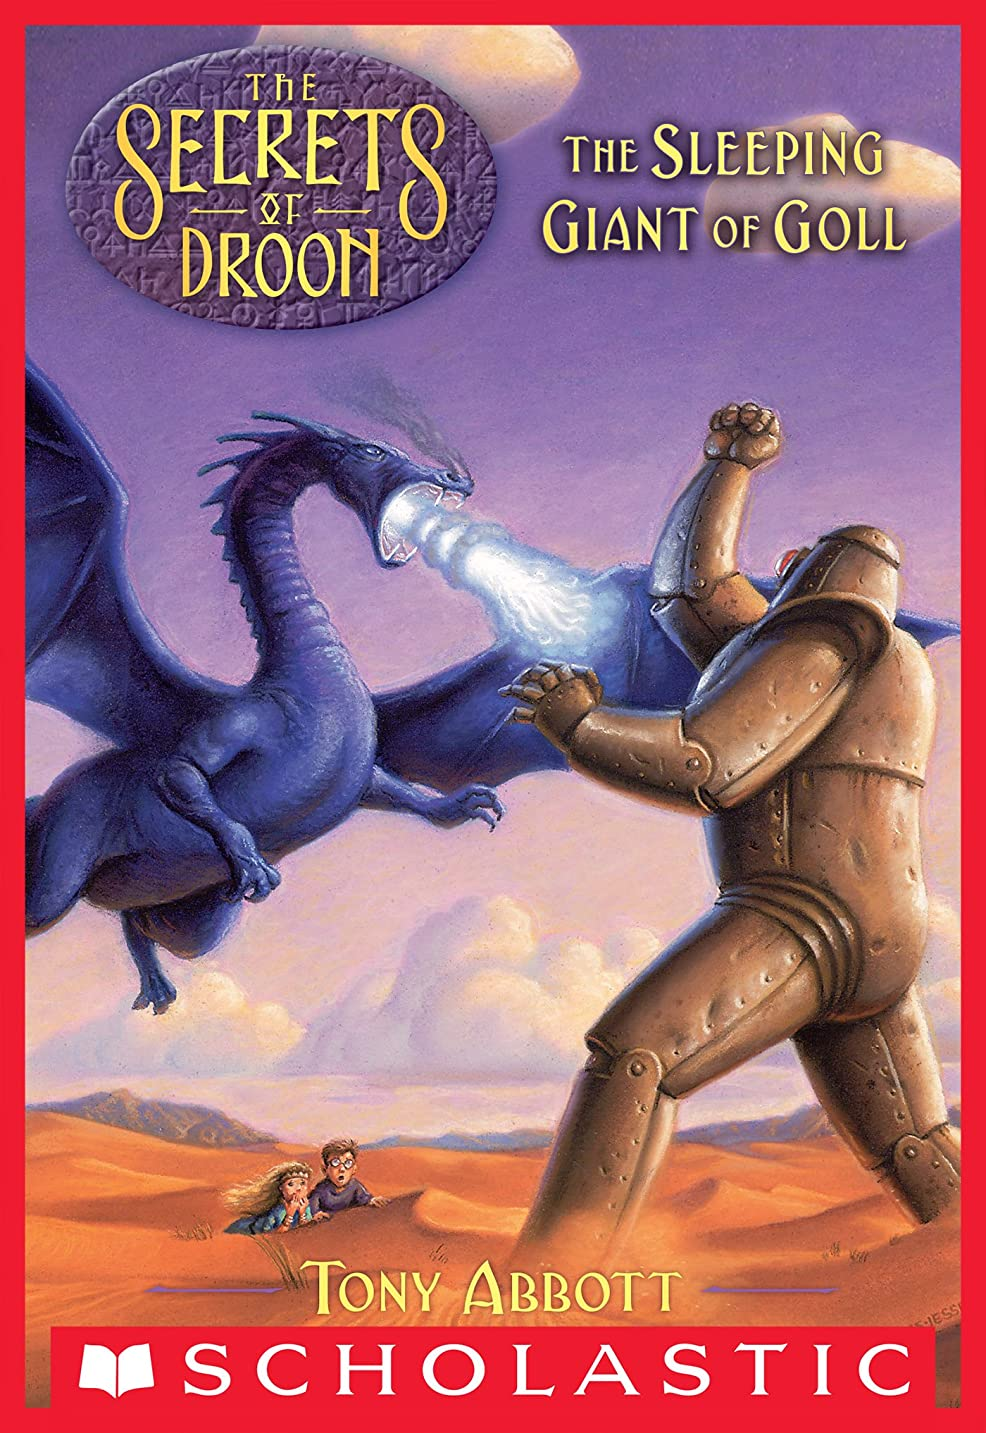 モート消費する盗難The Secrets of Droon #6: The Sleeping Giant of Goll (English Edition)